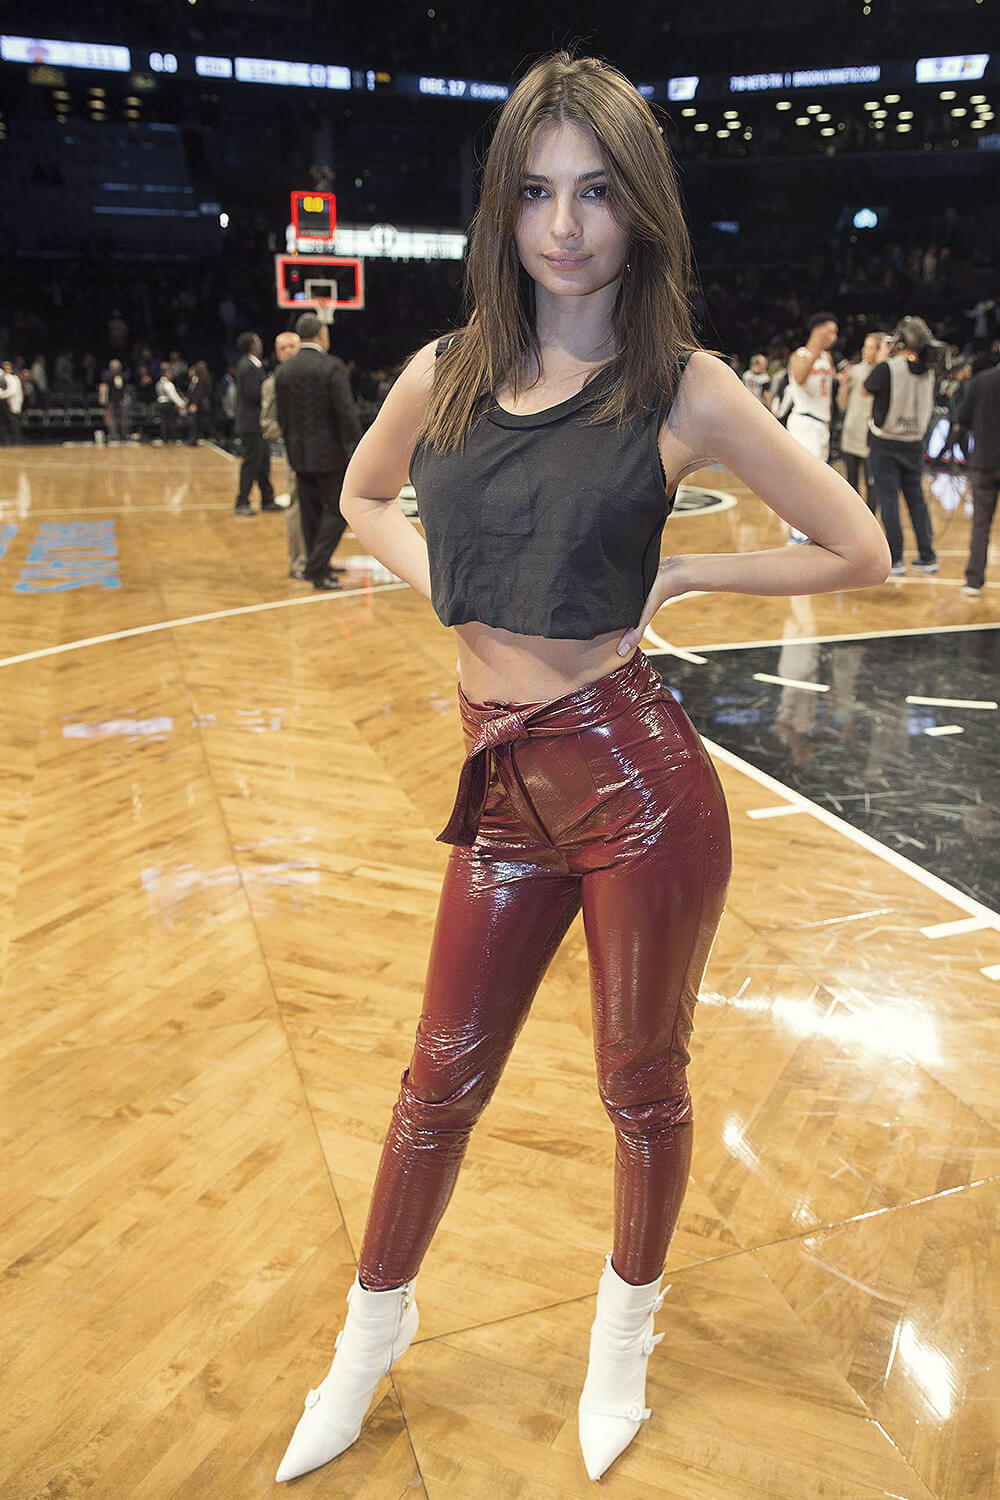 Emily Ratajkowski attends Knicks vs the Nets